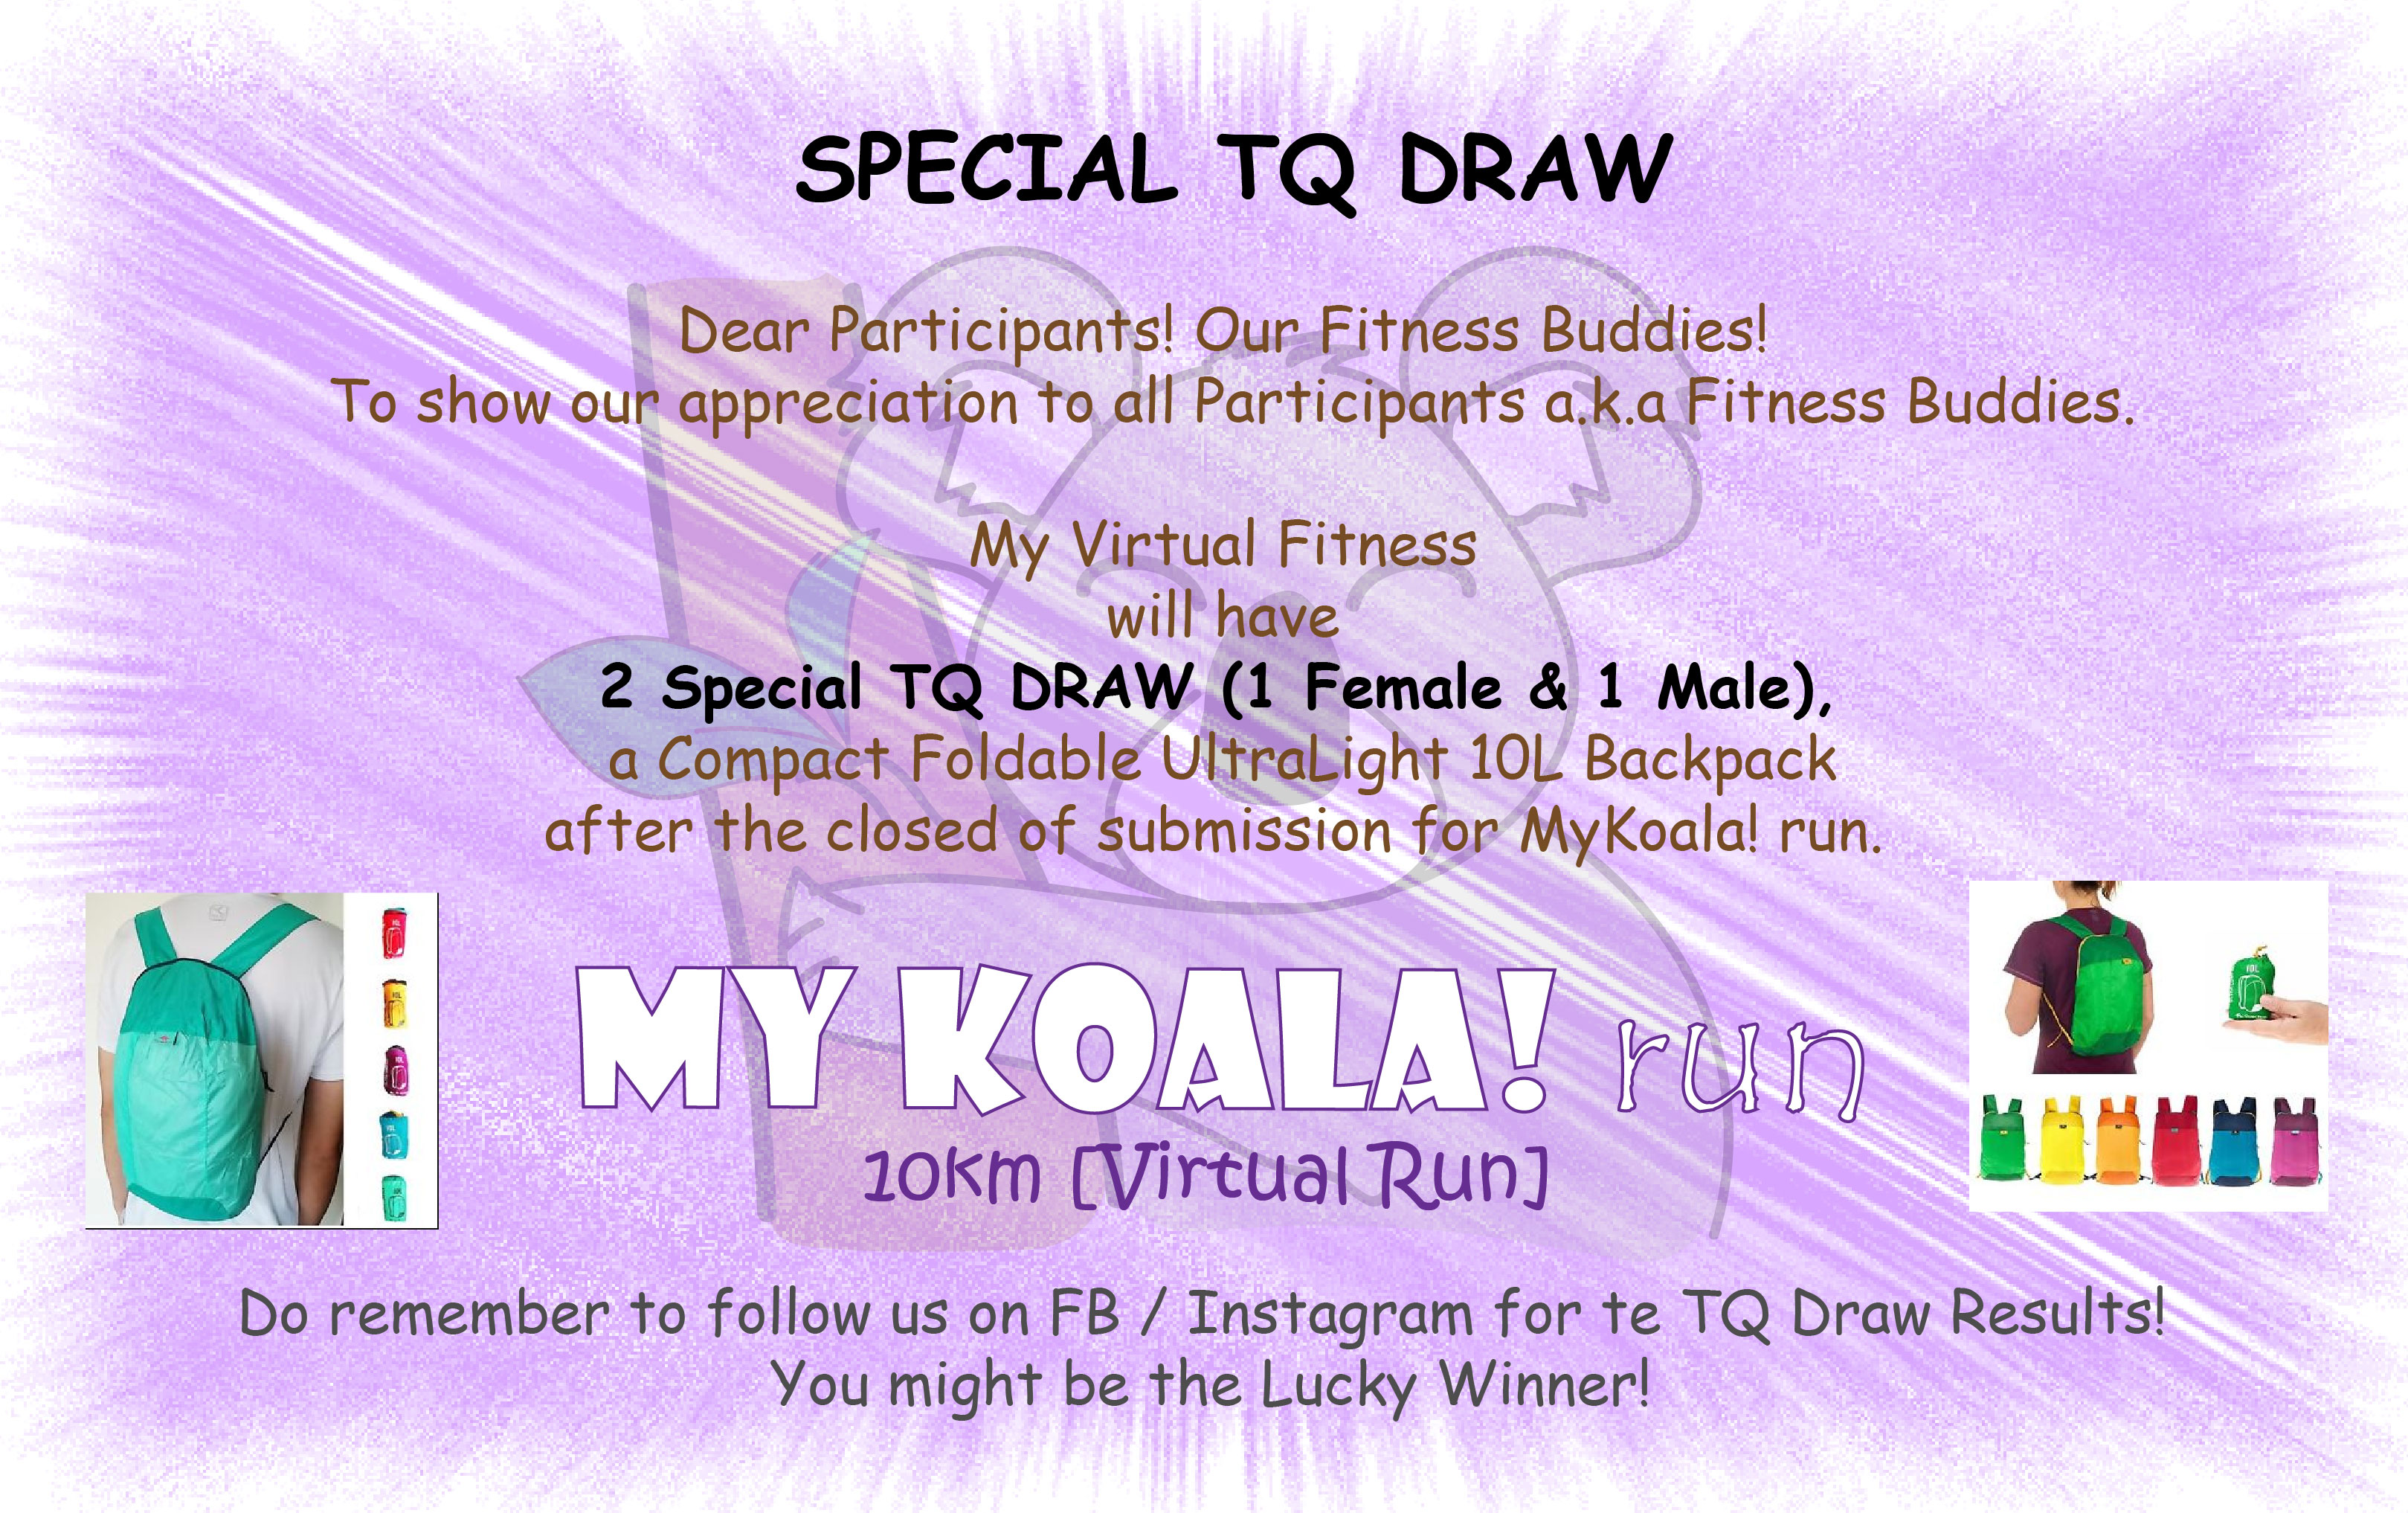 MyKoala! run TQ DRAW